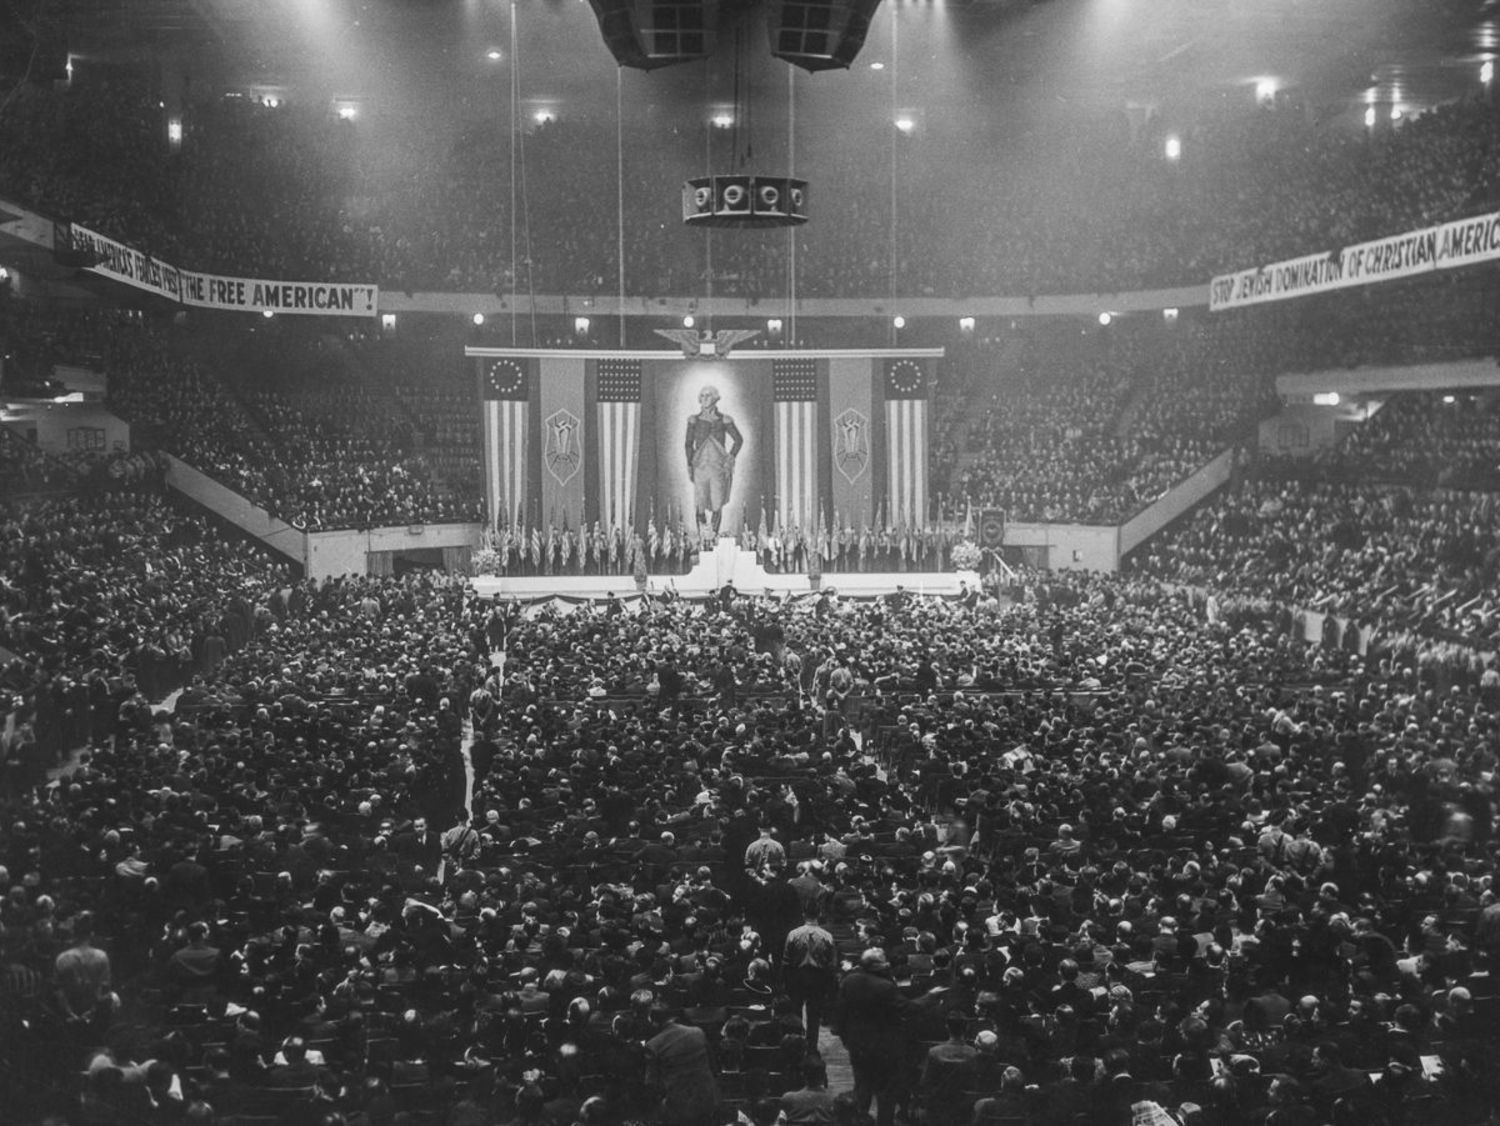 """Feb. 20, 1939. Twenty-thousand attend a meeting of the German American Bund, which included banners such as """"Stop Jewish Domination of Christian Americans."""""""